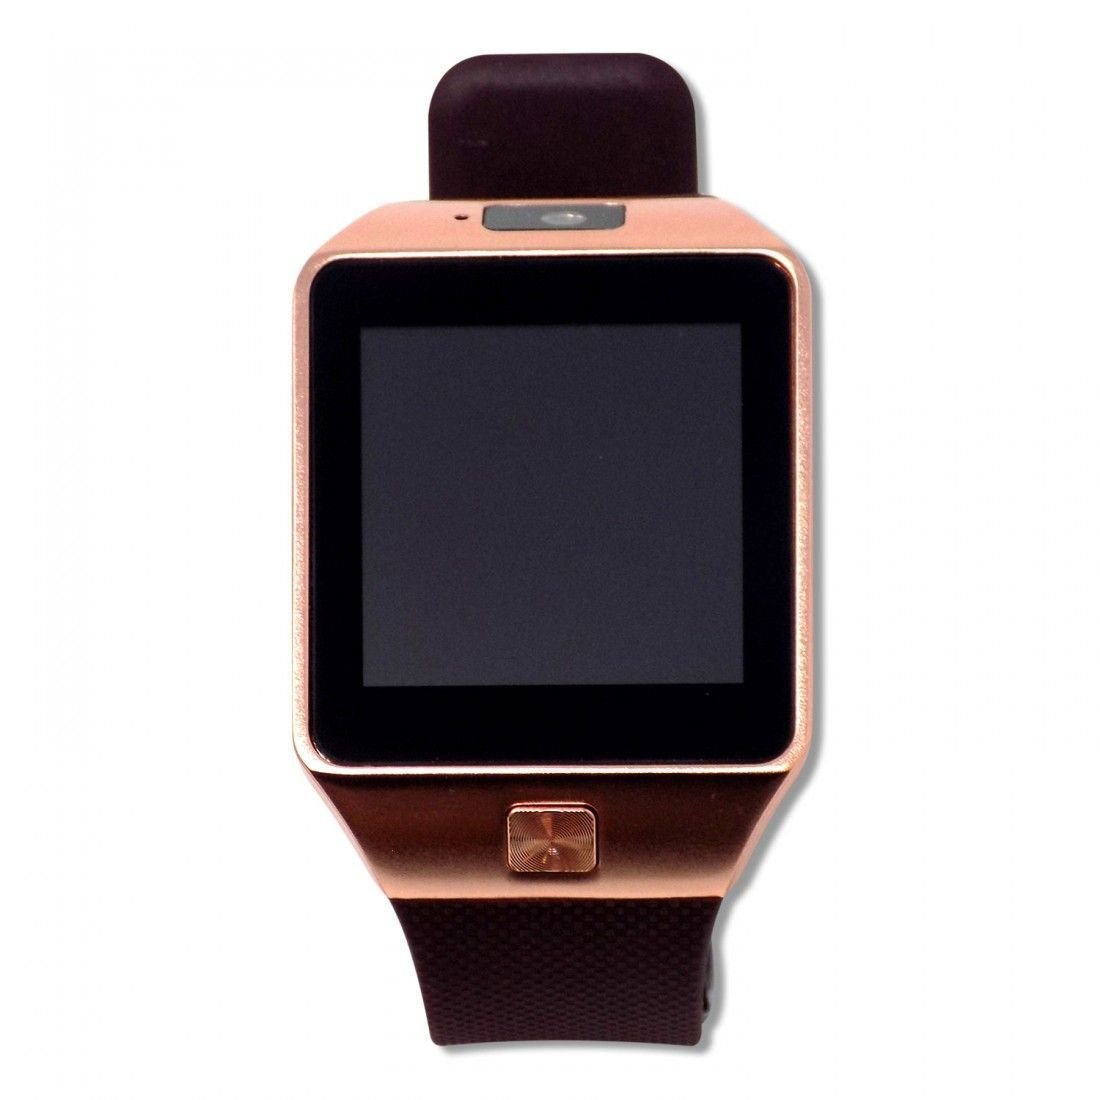 Veme Bluetooth Smart Watch with Touch Screen, Camera, Sim Card Support for IOS, Andriod Mobiles and iPhones (Burgundy Strap/Rose Gold Frame)